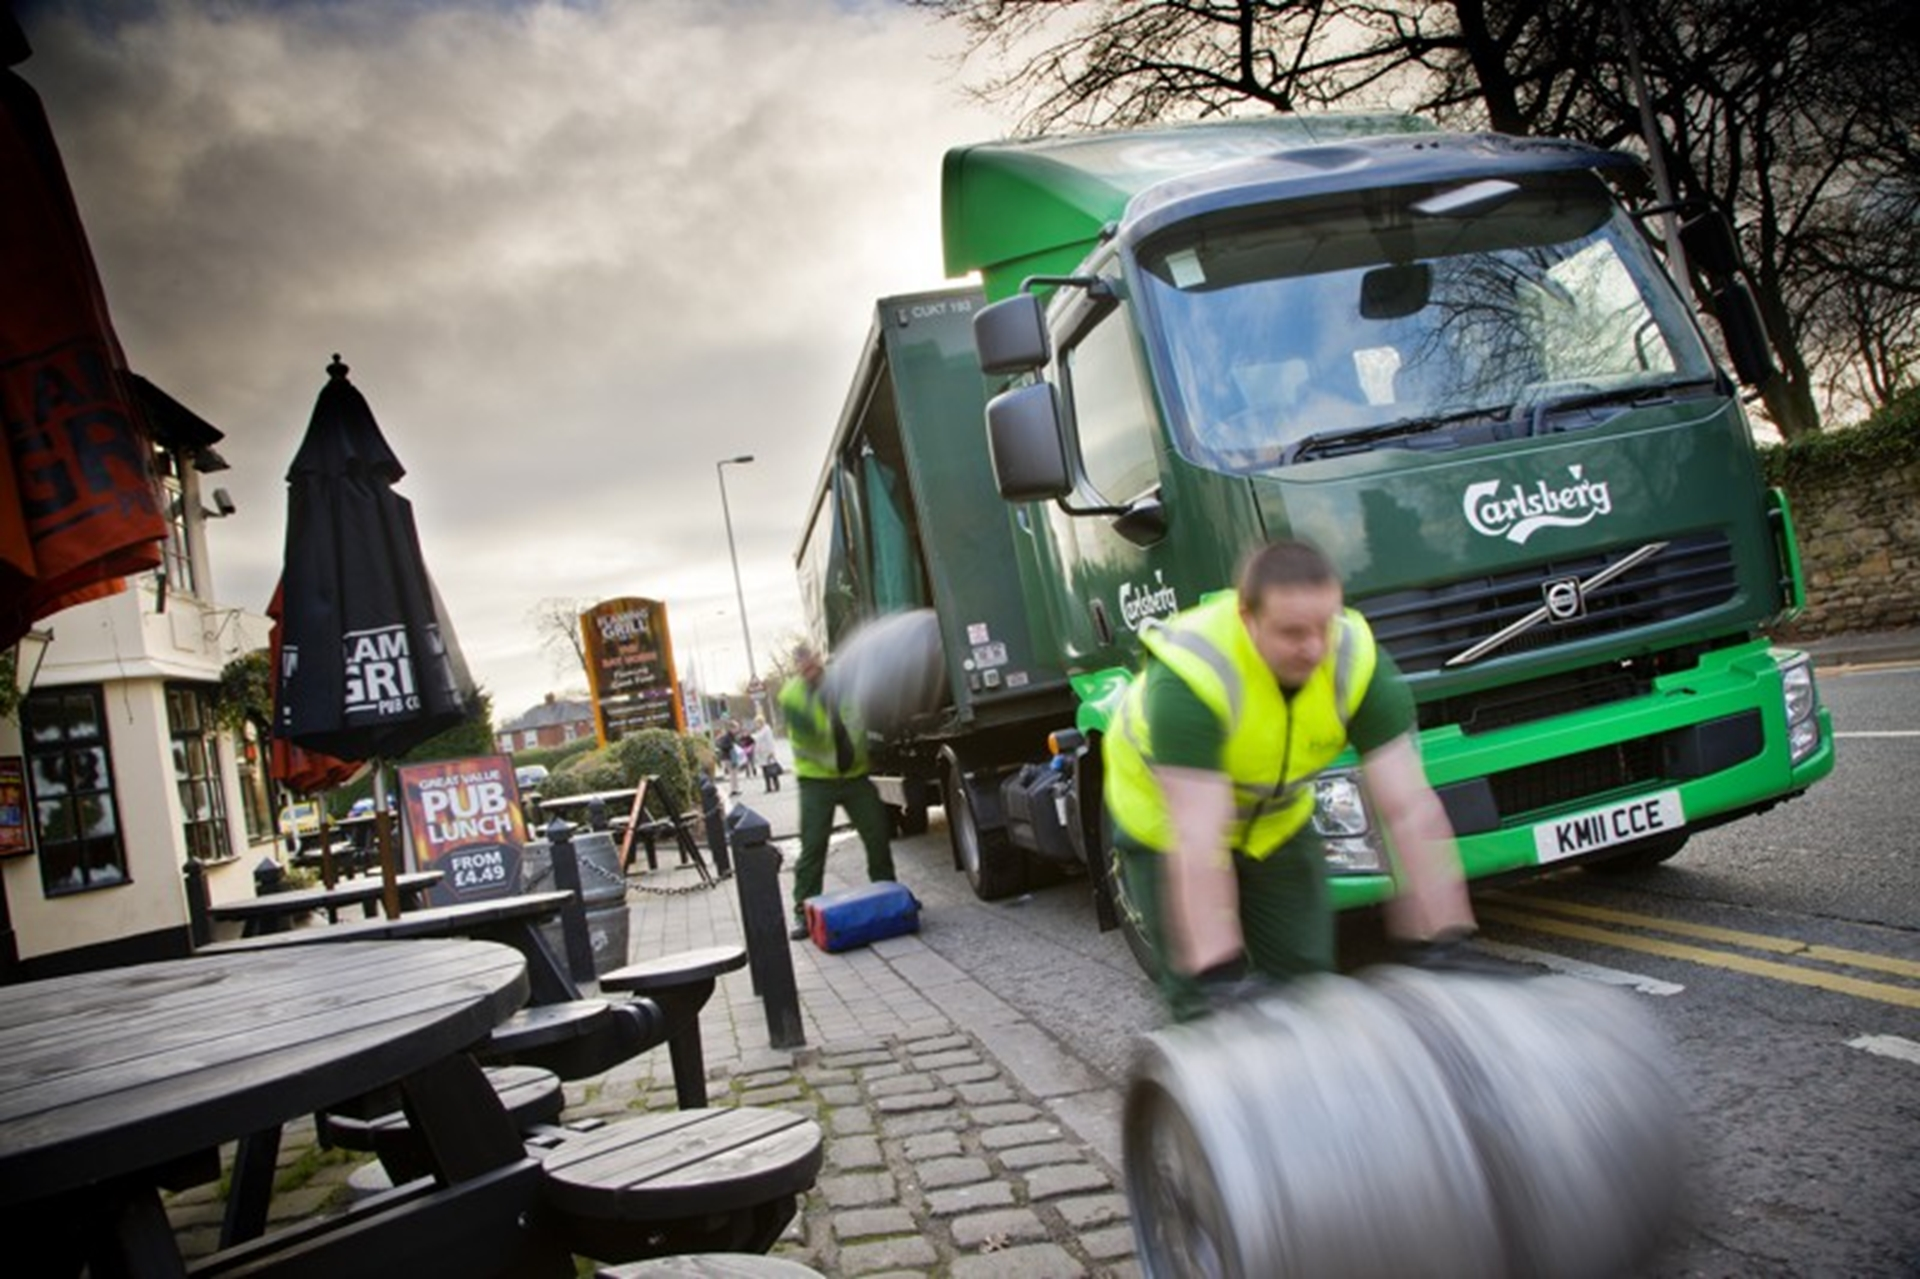 16 new Volvo vehicles entered service with Carlsberg UK Ltd